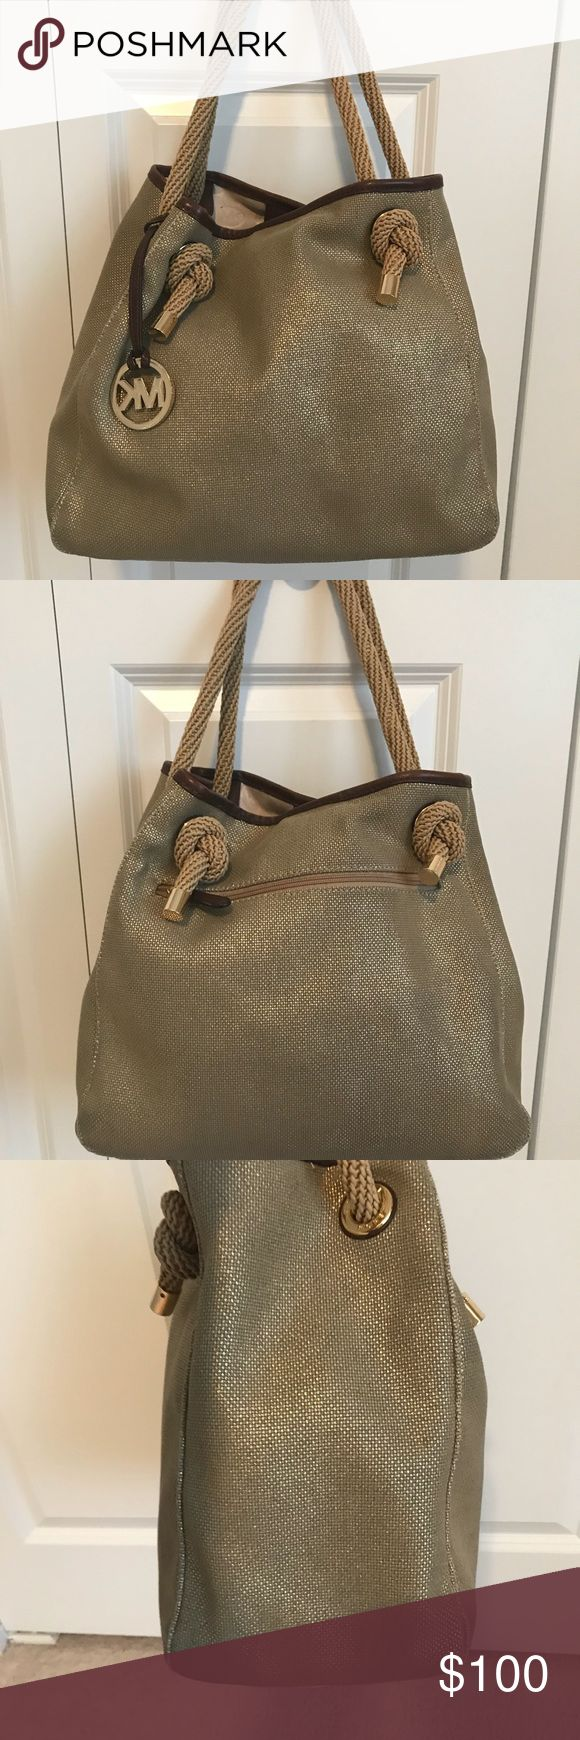 Michael Kors Nautical Tote Bag Michael Kors nautical tote bag. Gold shimmer with rope straps. Slouchy. Very roomy with multiple pockets on the inside. Wear on the bottom corners and leather trim, overall in good used condition. Michael Kors Bags Totes